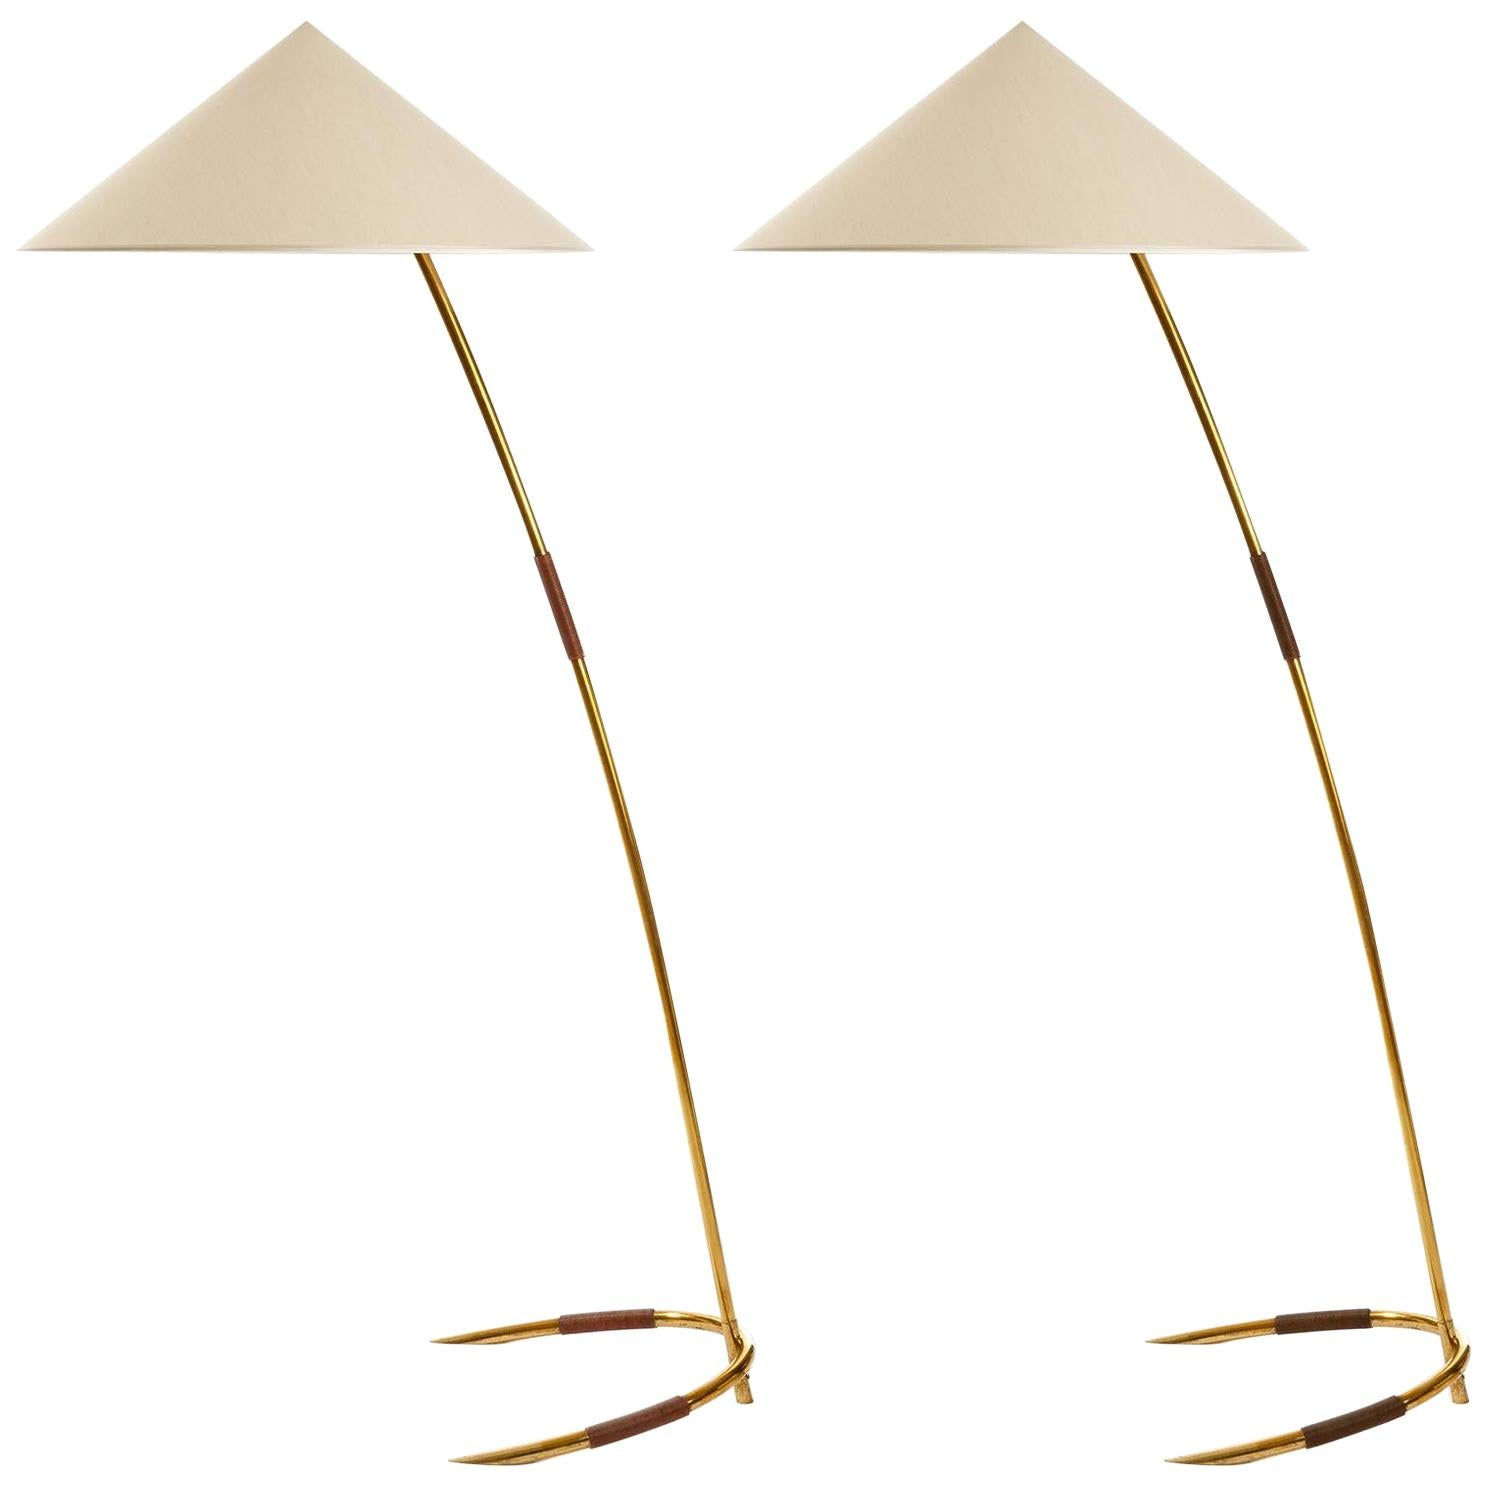 One of Two Brass Floor Lamps by Rupert Nikoll, Austria, 1960